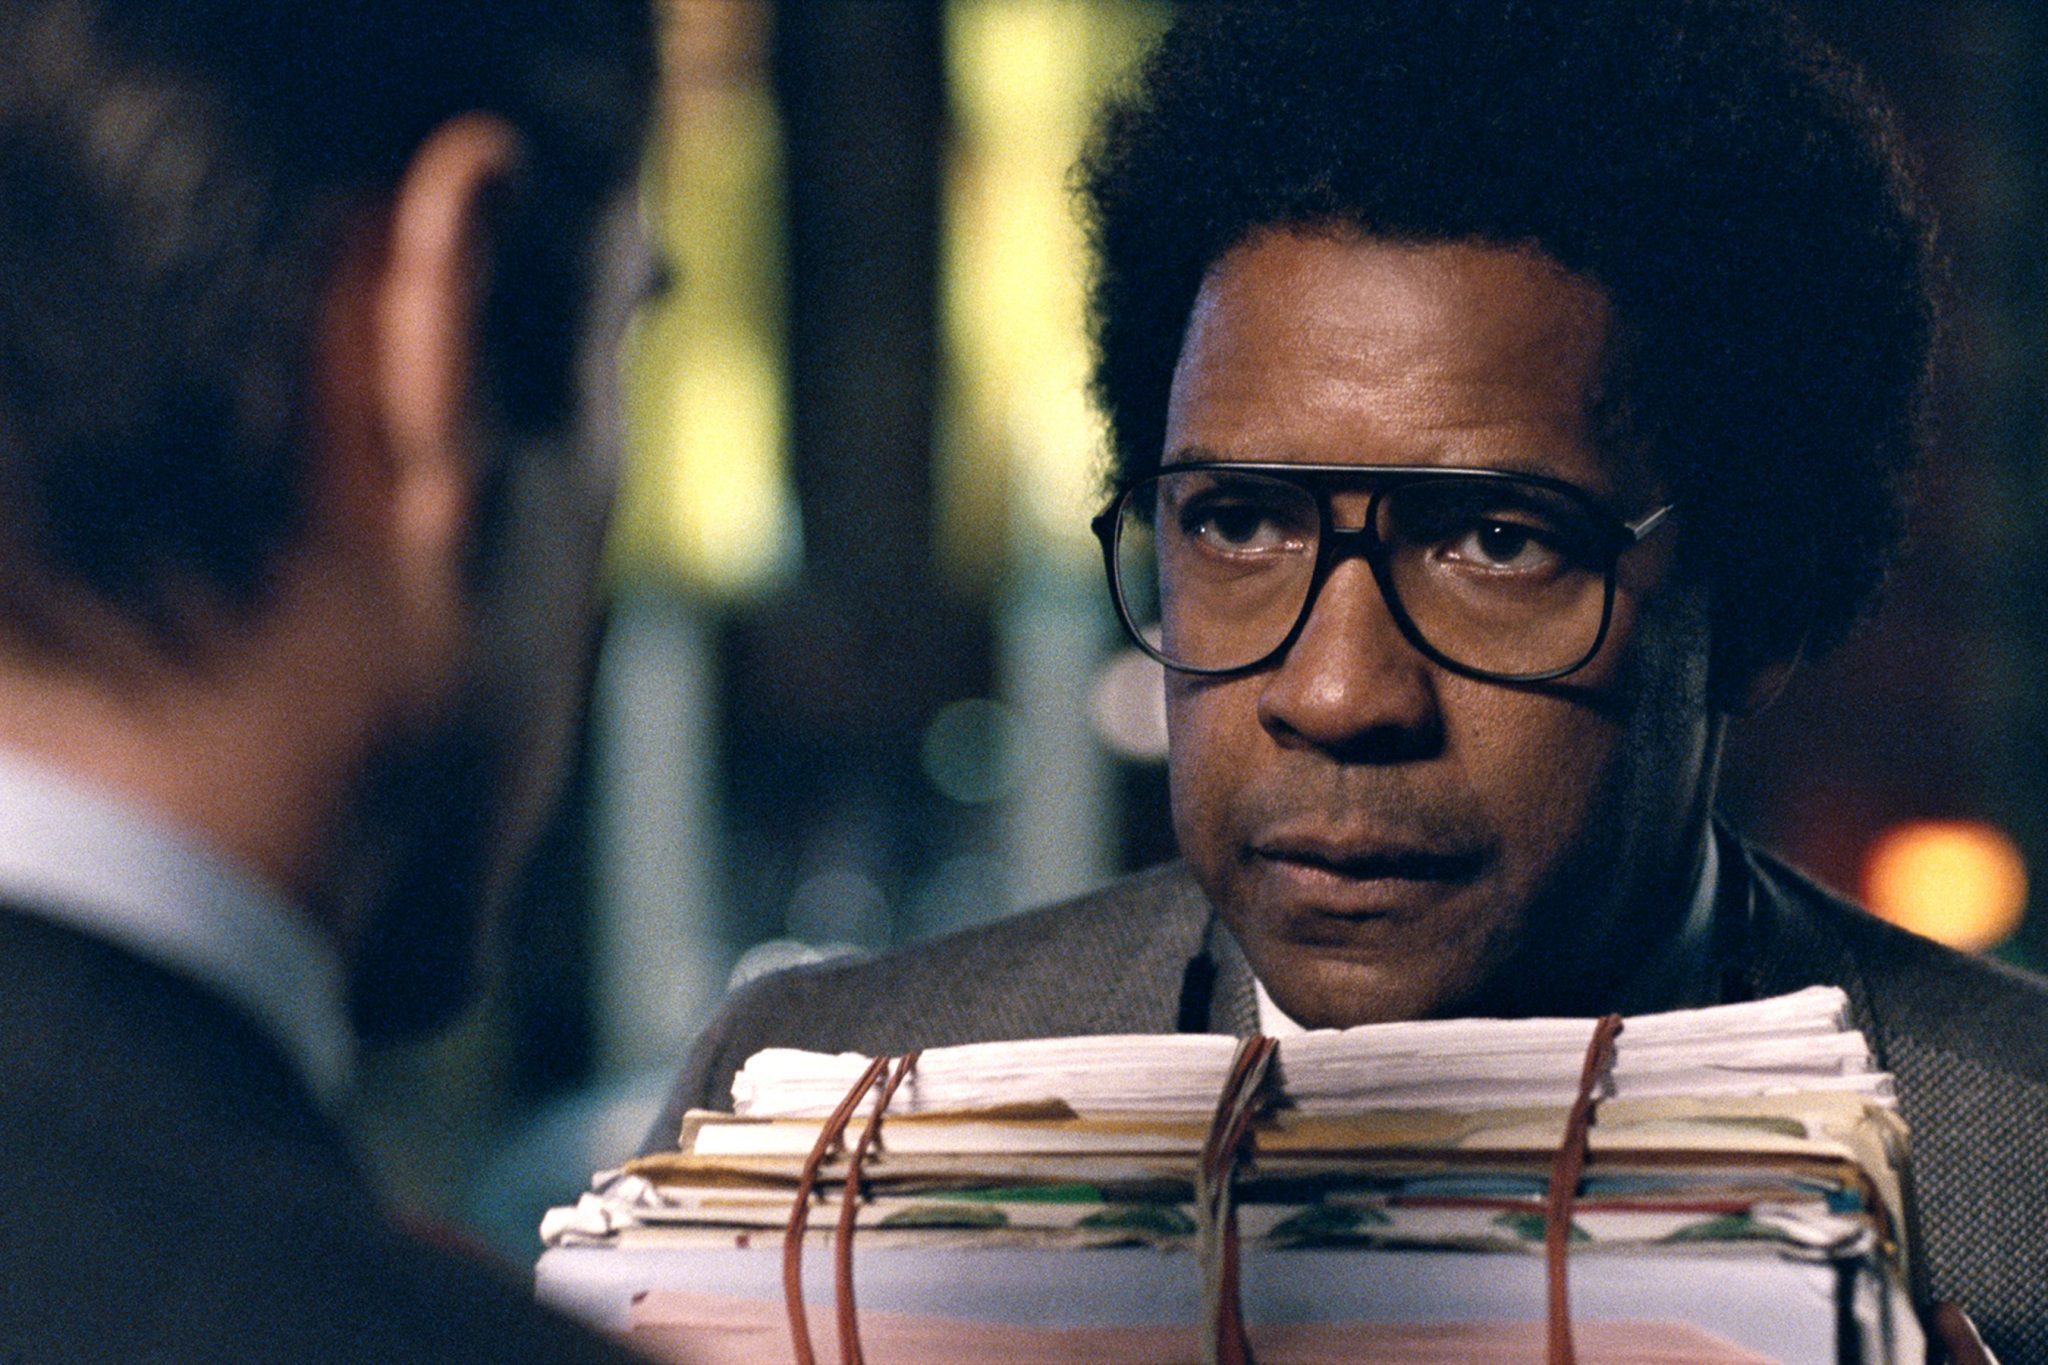 'Roman J. Israel, Esq.' is a dull and well-meaning examination of a solitary life